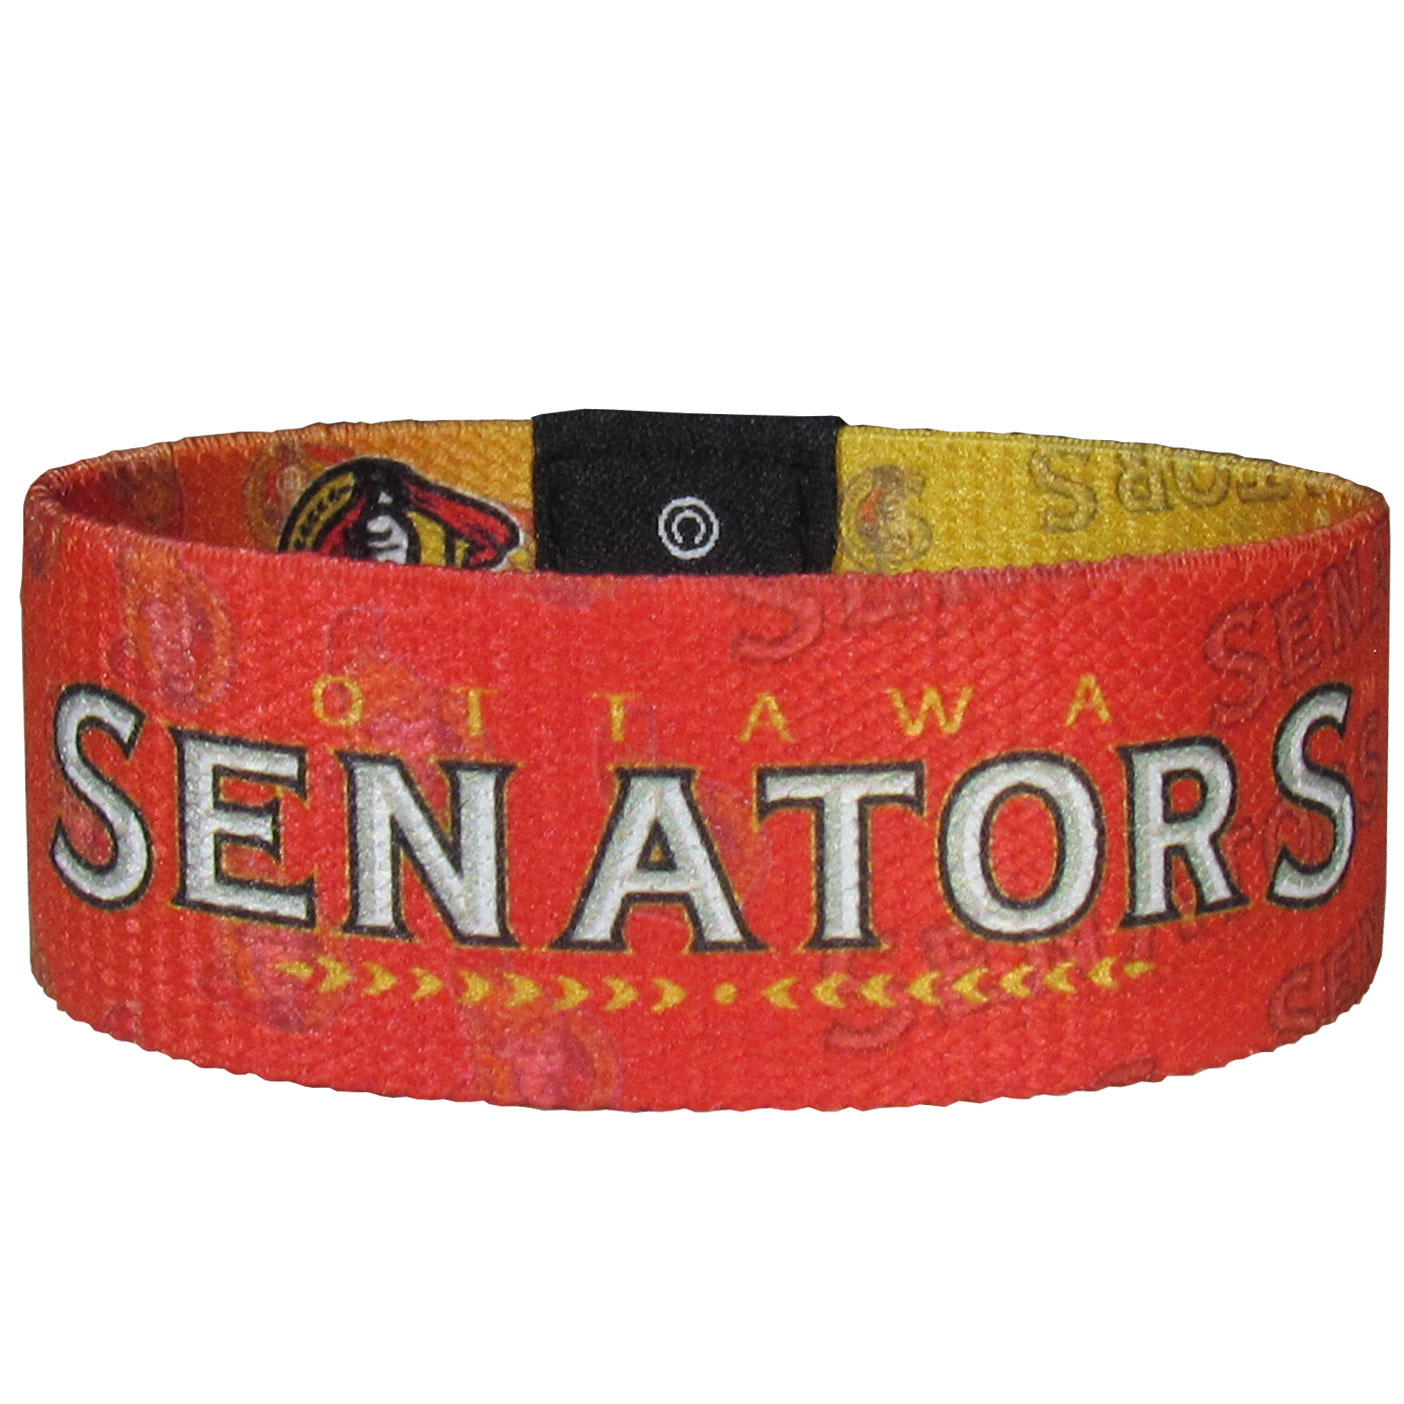 Ottawa Senators® Stretch Bracelets - Instantly become a team VIP with these colorful wrist bands! These are not your average, cheap stretch bands the stretch fabric and dye sublimation allows the crisp graphics and logo designs to really pop. A must have for any Ottawa Senators® fan!